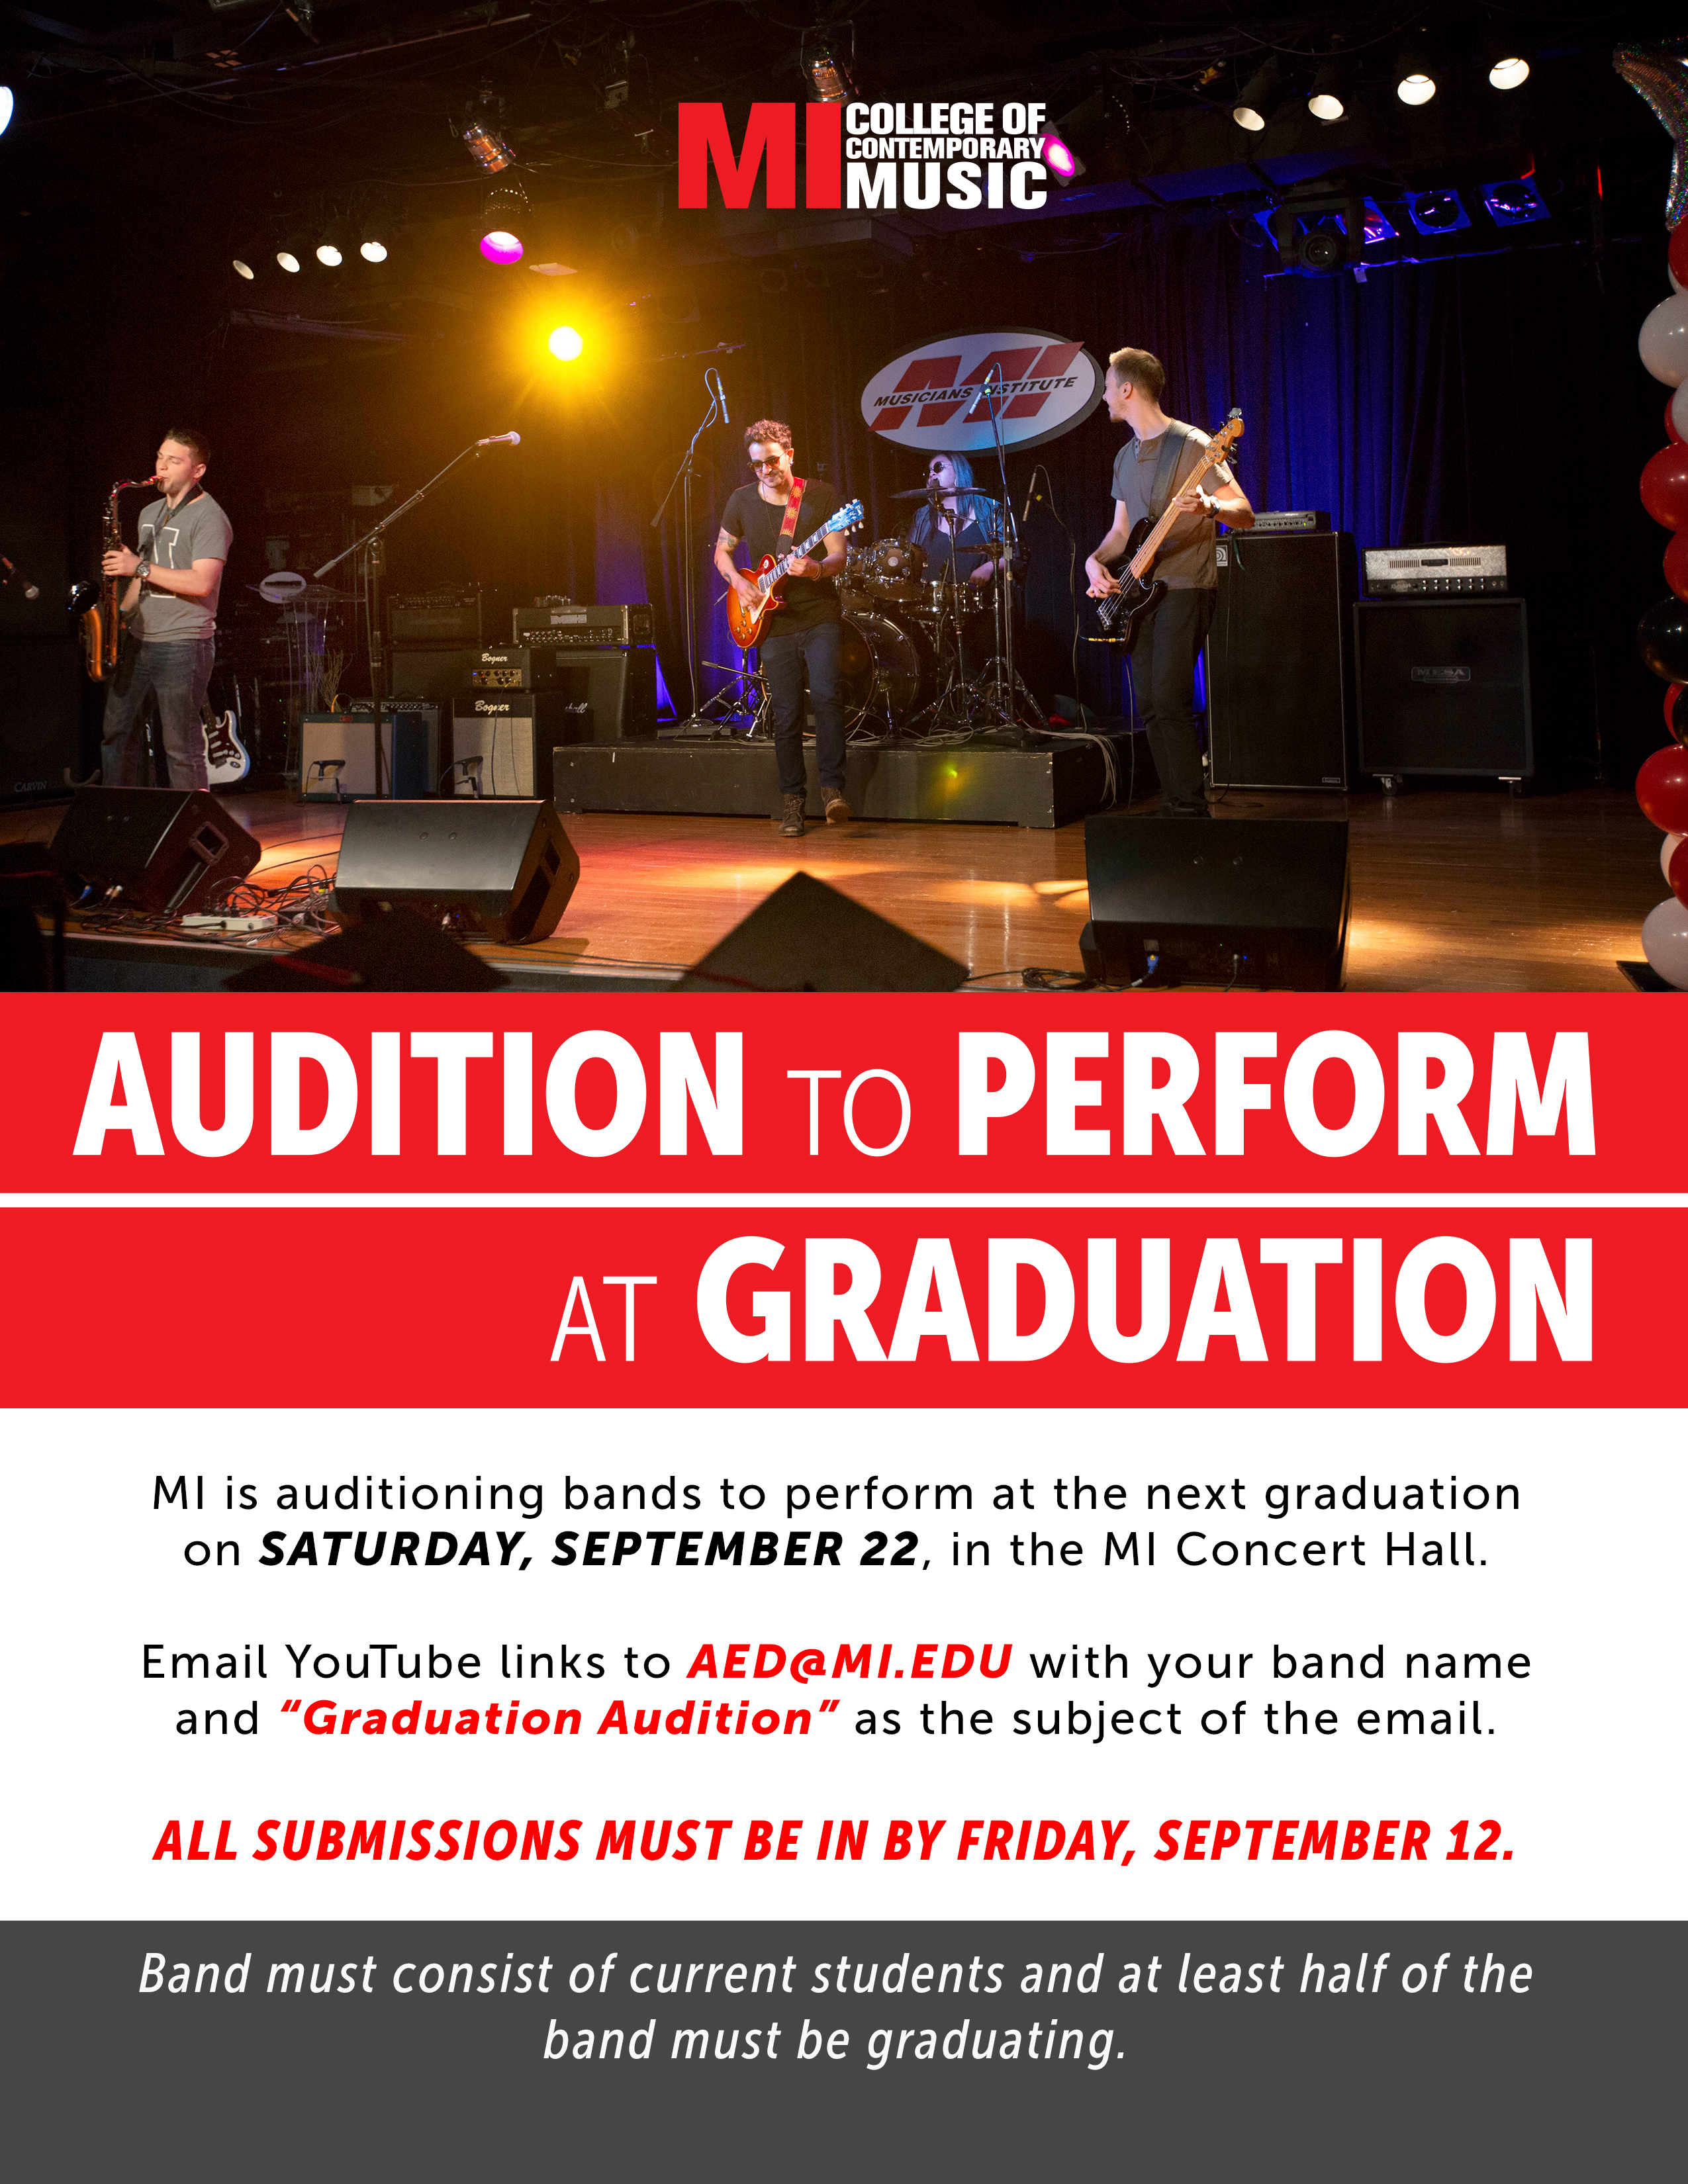 AUDITION TO PERFORM AT GRADUATION WEDNESDAY, SEPTEMBER 5, 2PM – WEDNESDAY, SEPTEMBER 12, 2018, 11:55PM